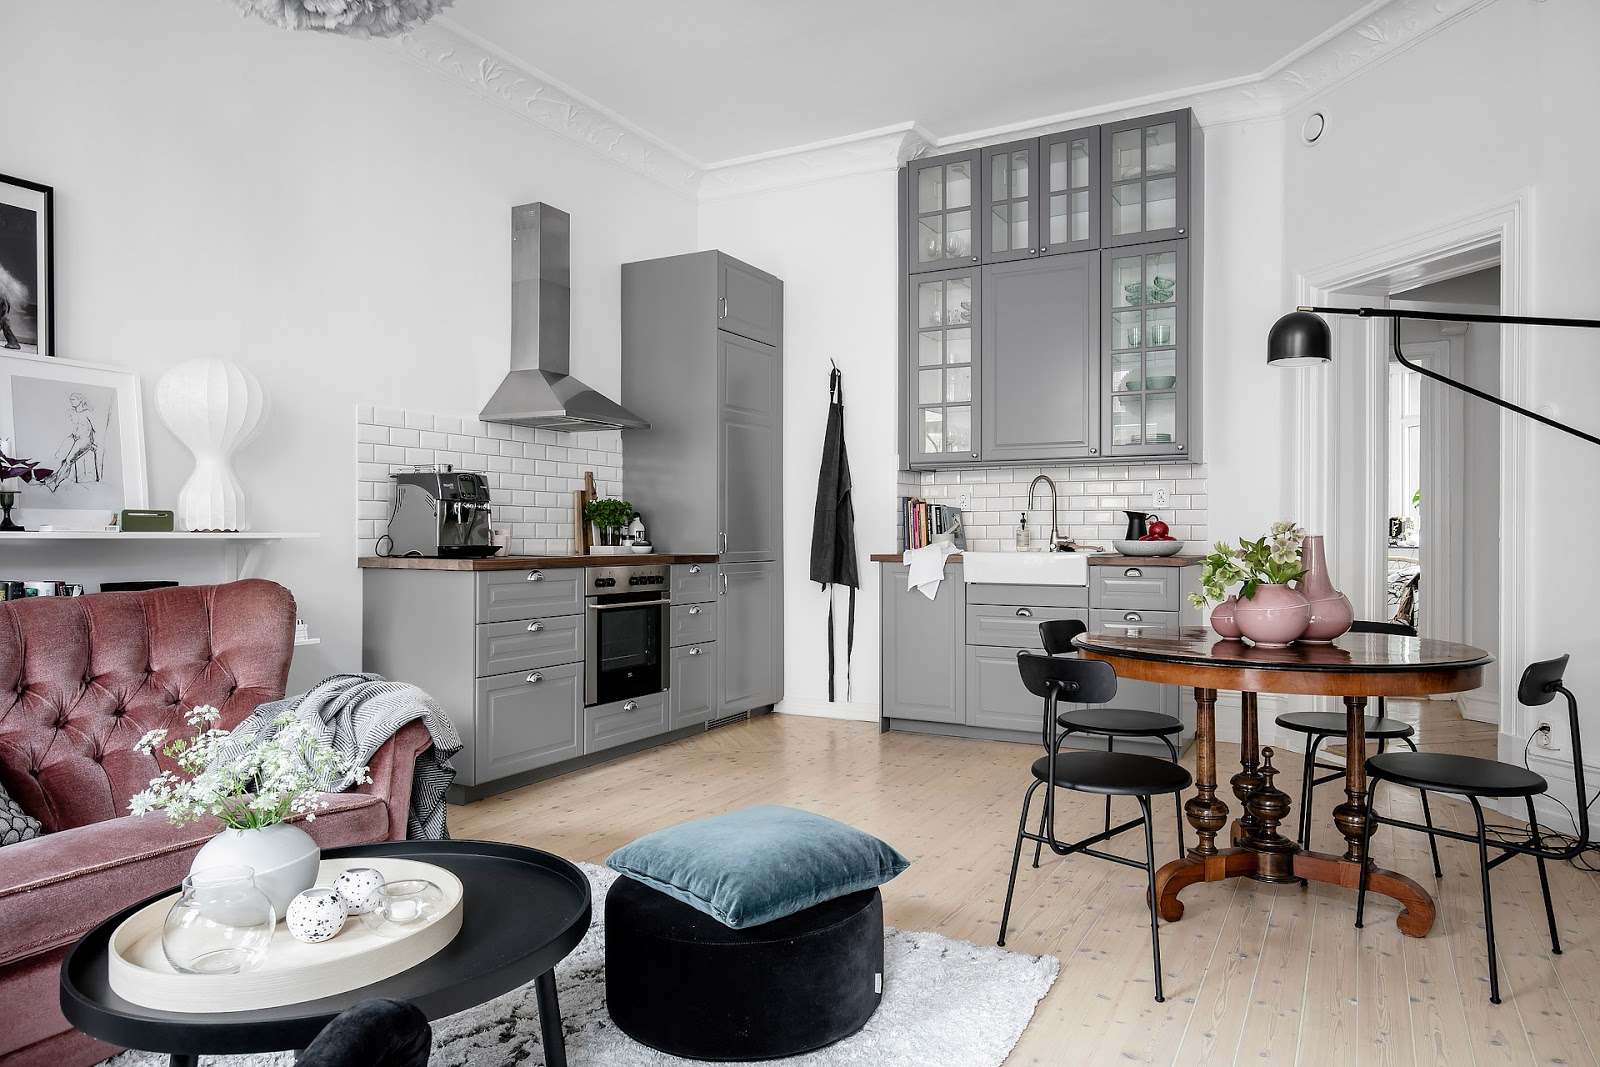 gray kitchen cabinets, vintage dining table, pink decor, small scandinavian apartment interior